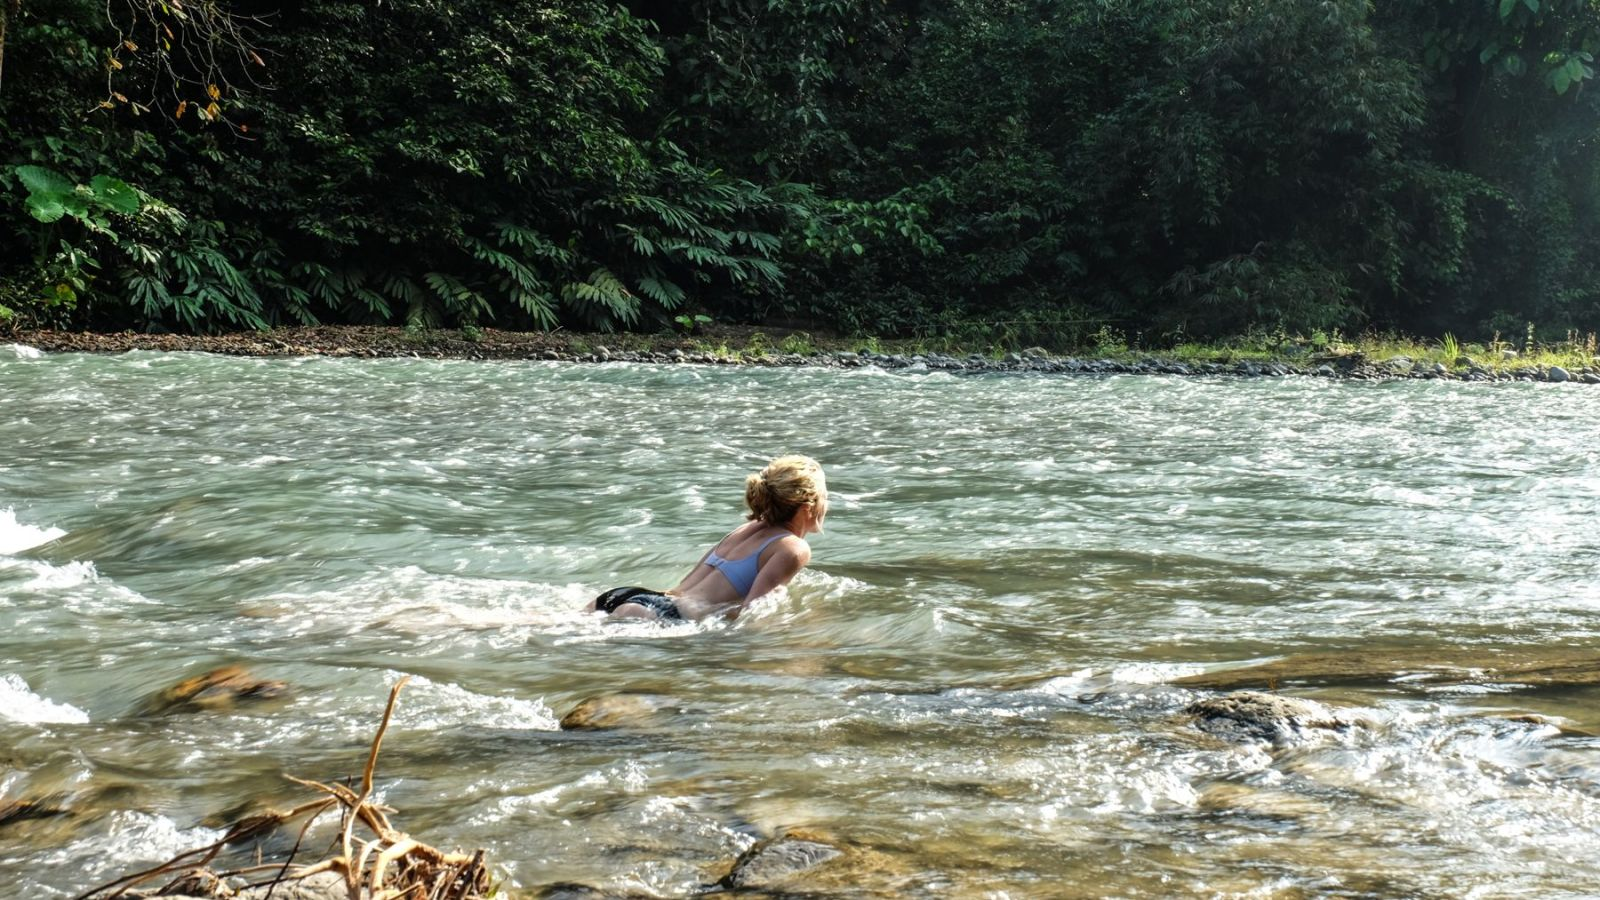 photo of a hiker taking a bath in a river in gunung leuser national park